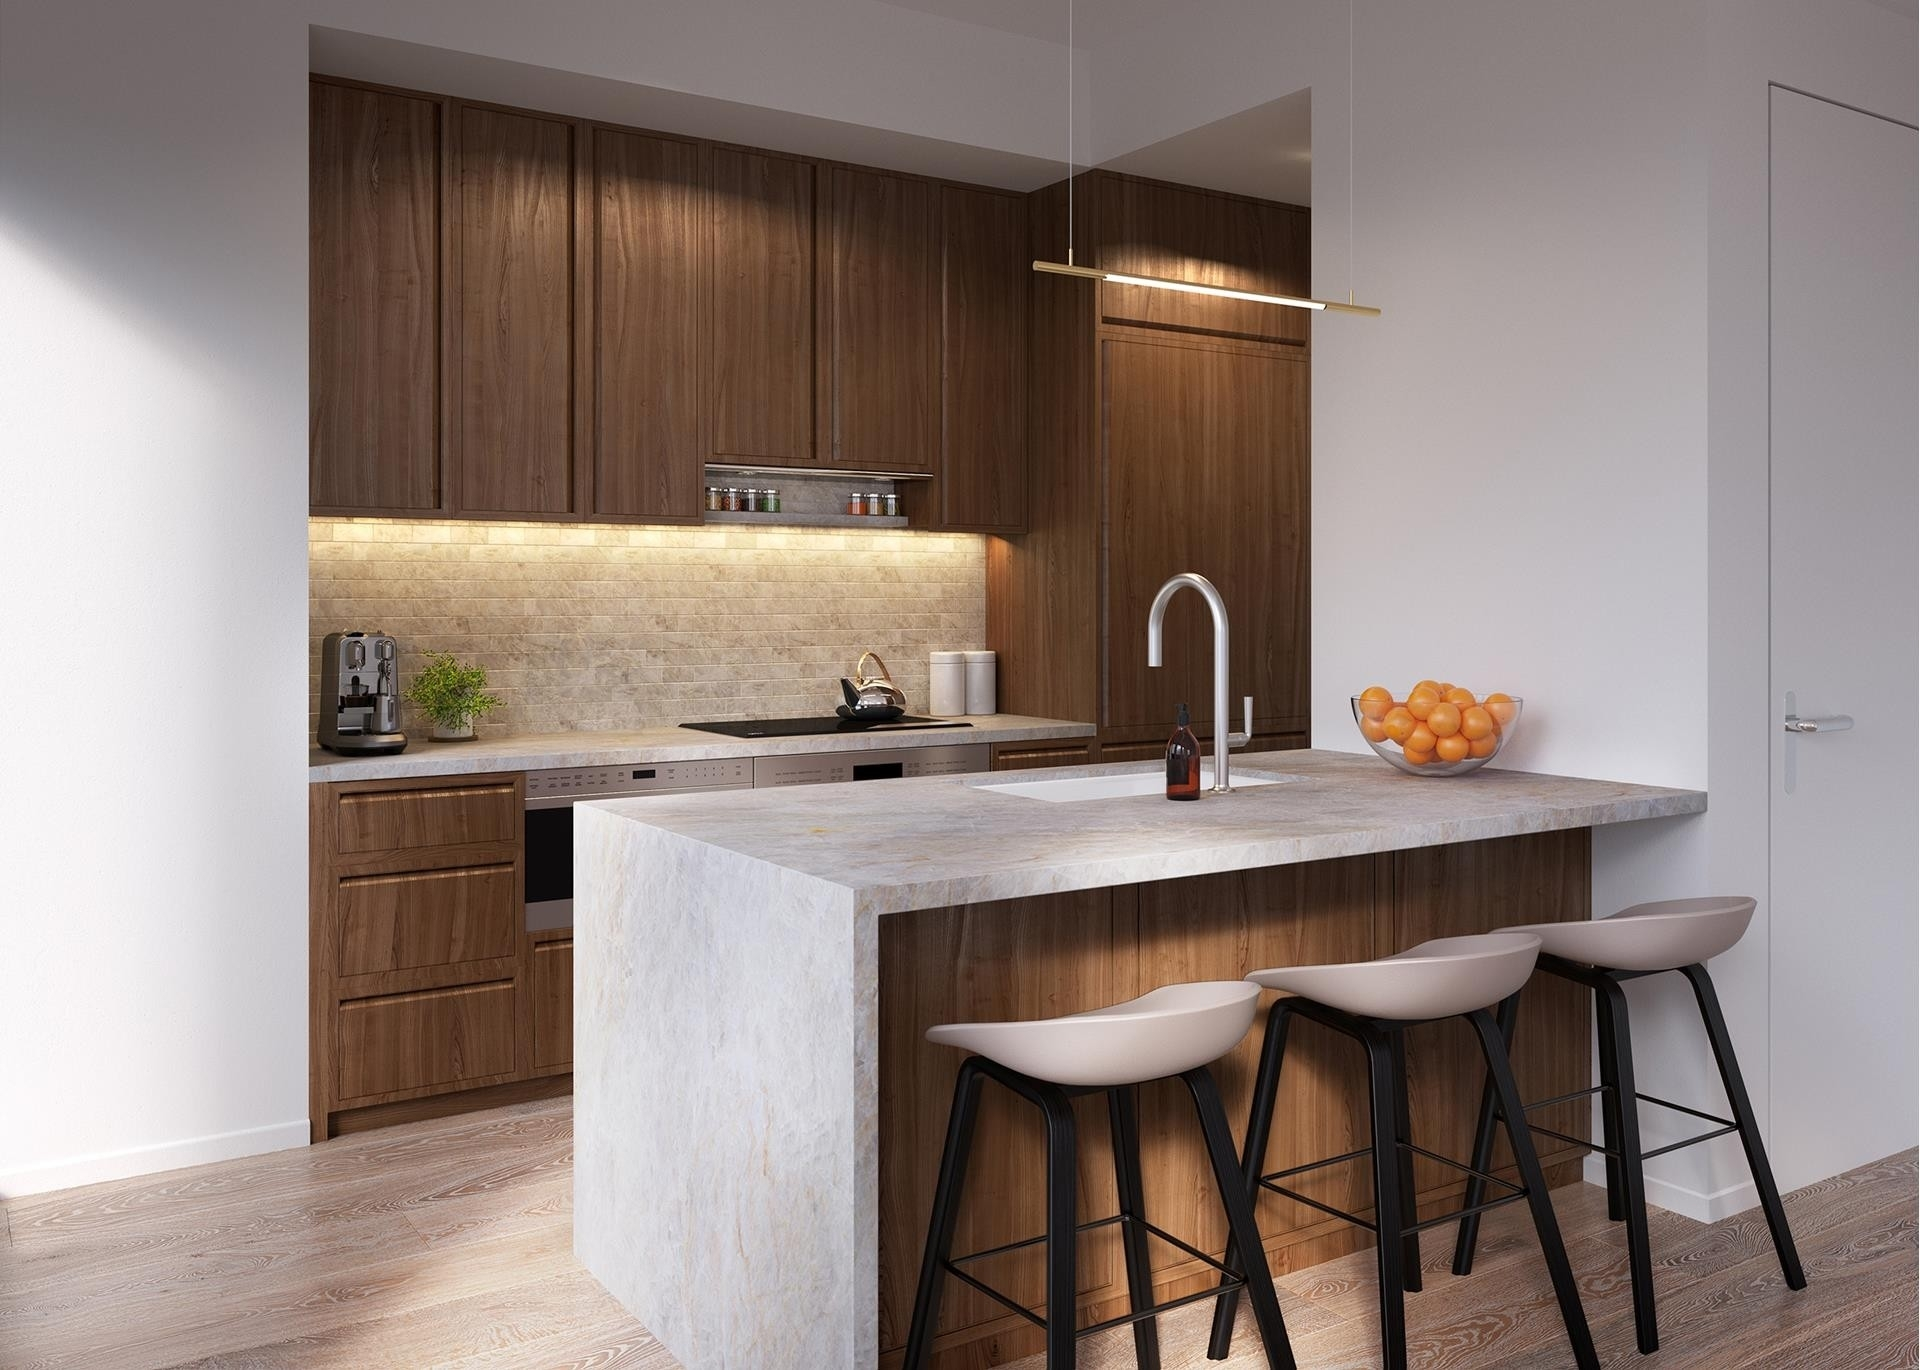 3. Condominiums for Sale at 30 East 31st St, 6B NoMad, New York, NY 10016